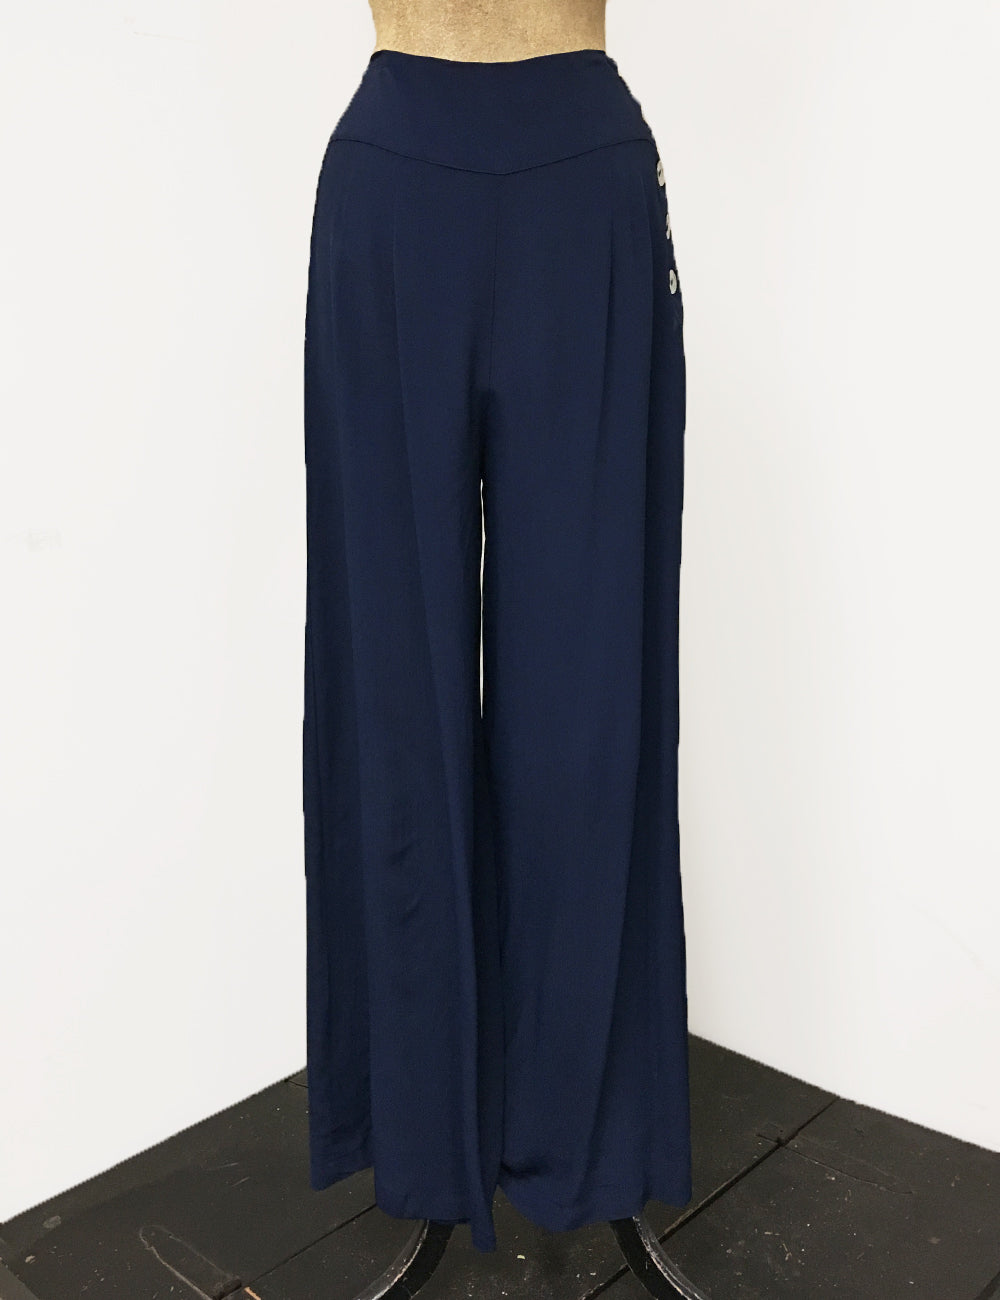 Navy Blue Retro 1940s Style High Waisted Palazzo Pants